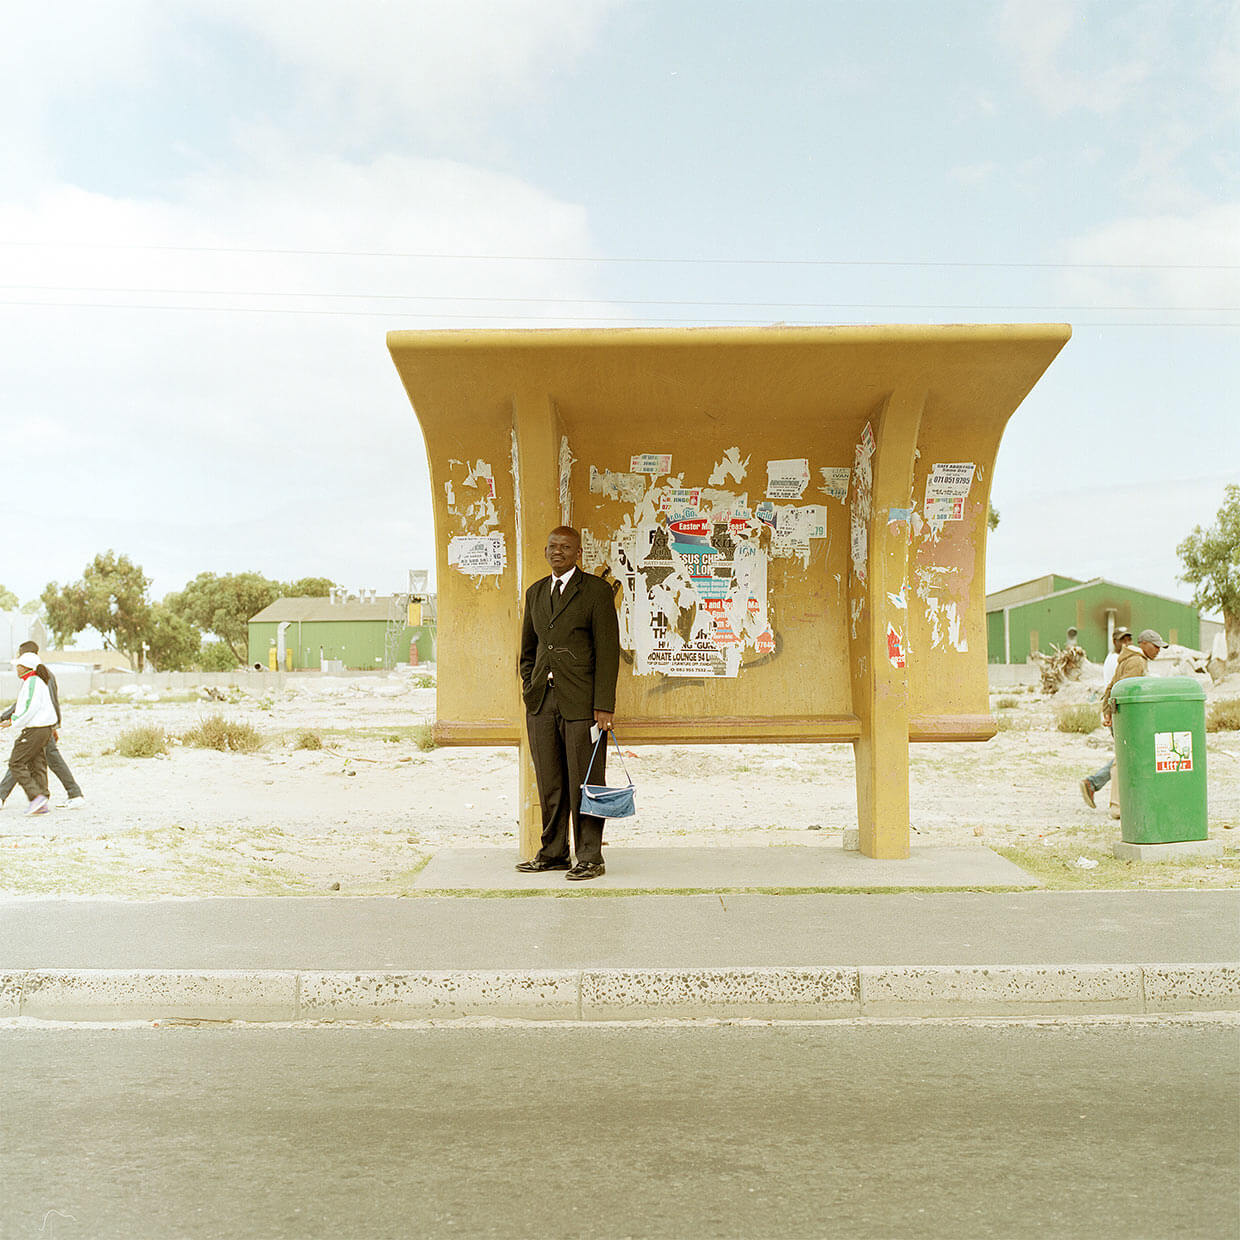 Claudio Rasano SOUTH AFRICA EVERYONE LIVE IN THE SAME PLACE LIKE BEFORE portrait of man waiting at bus stop